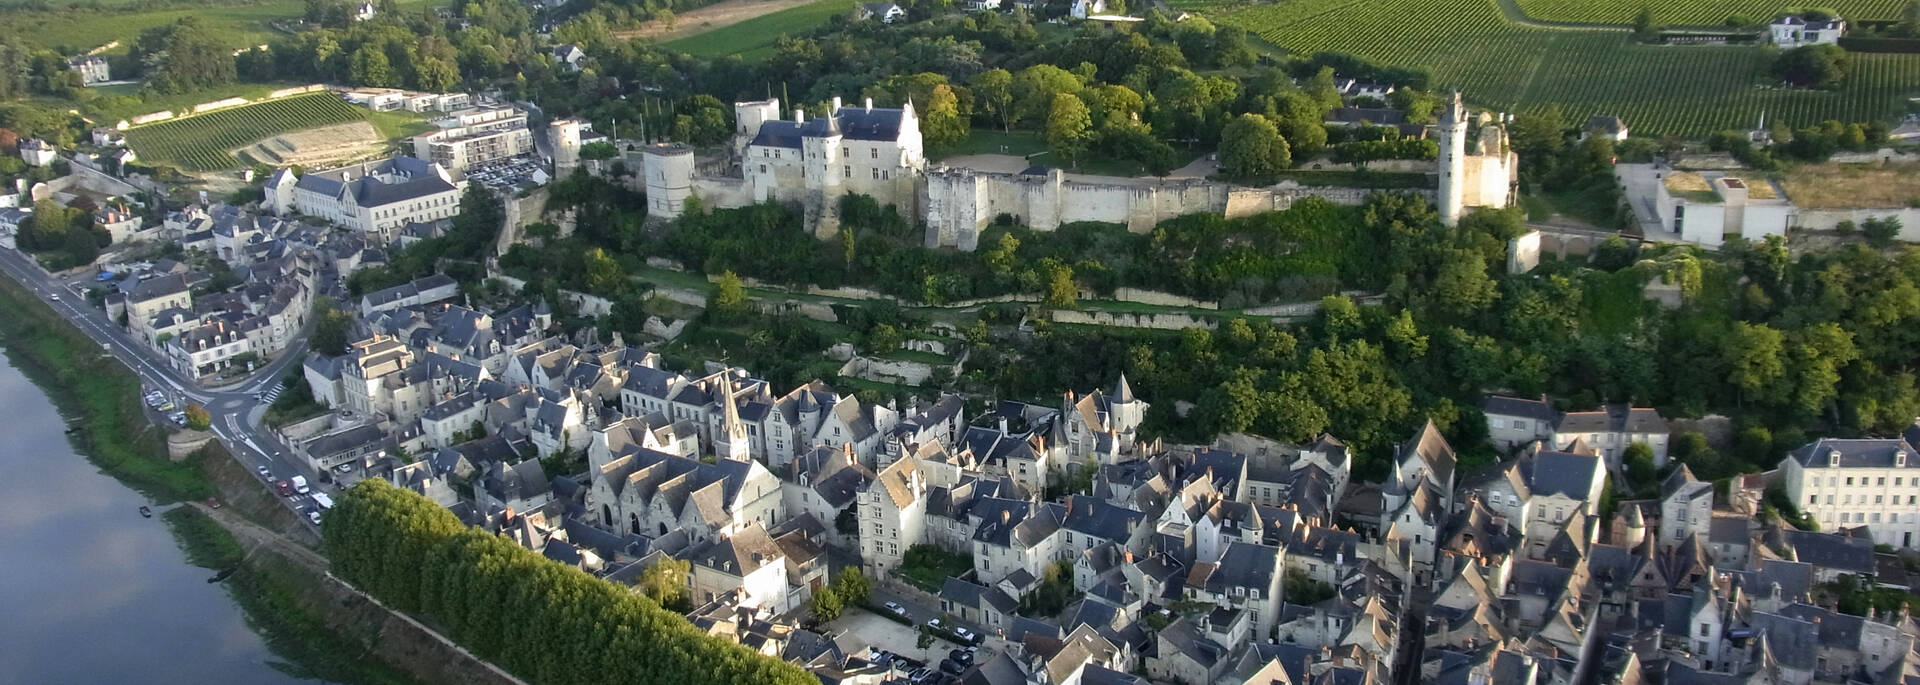 The City of Chinon